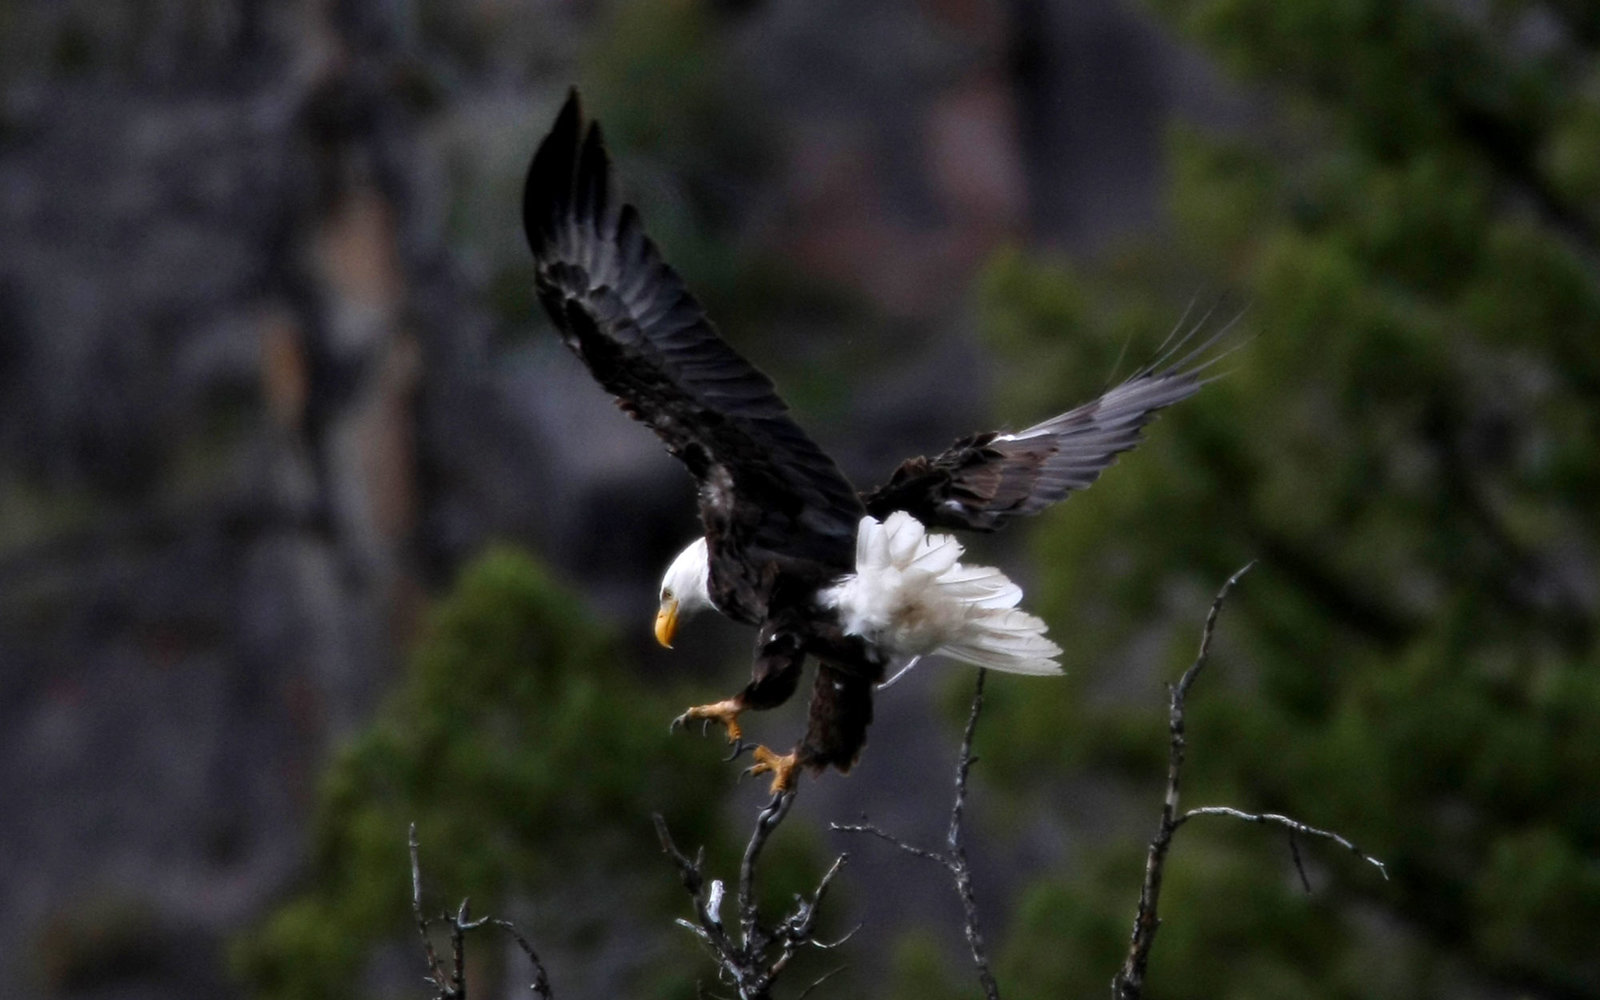 A bald eagle flies above the Madison River in Yellowstone National Park in Wyoming on August 12, 2009. National Park Service rangers are looking into the effects of climate change on the wildlife in the park.  (Photo by Anne Cusack/Los Angeles Times via G